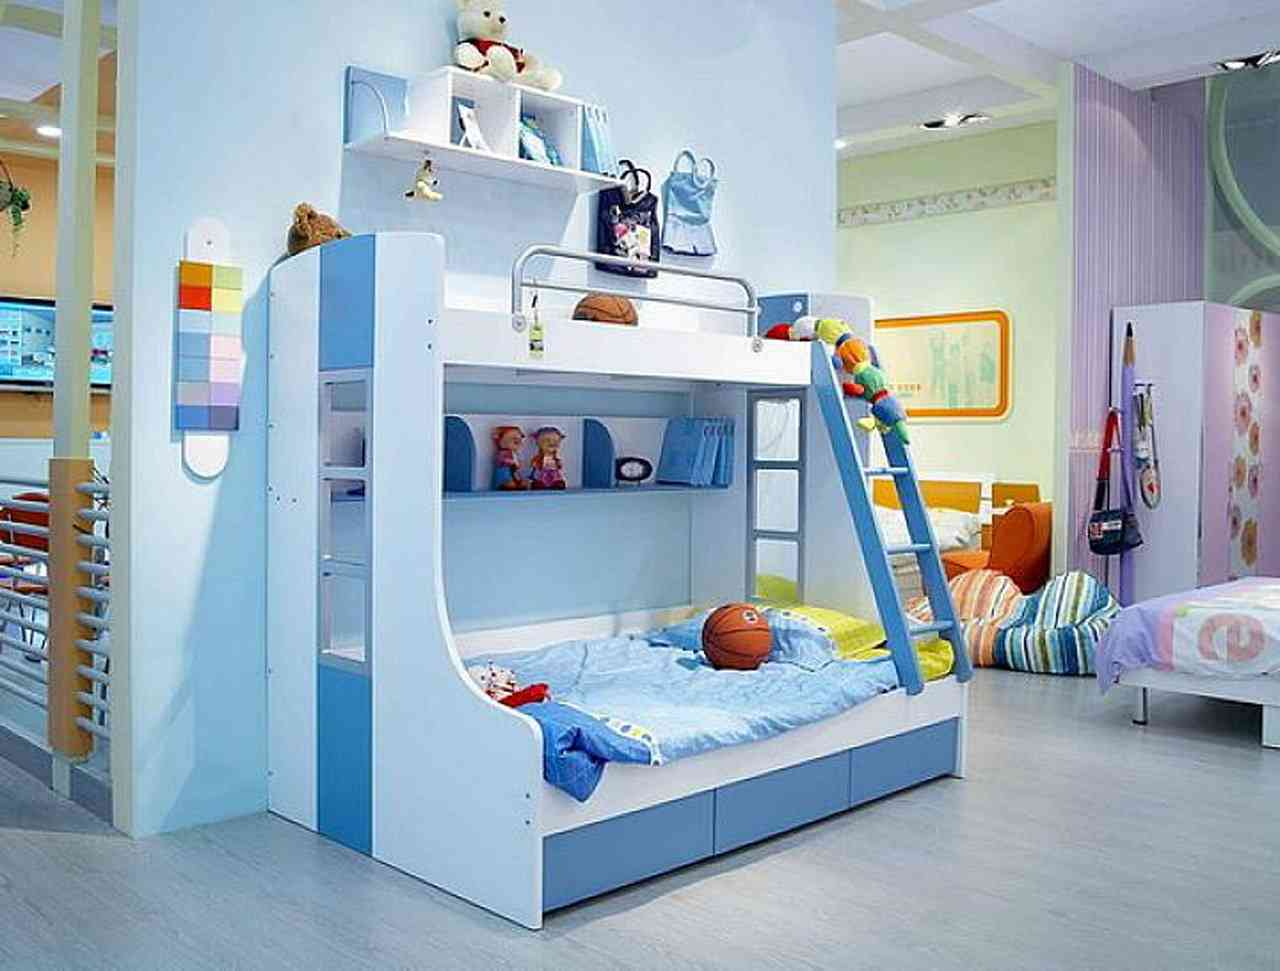 Ideas of remodell your your small home design with cool amazing kid bedroom  furniture kids bedroom furniture sets for boys